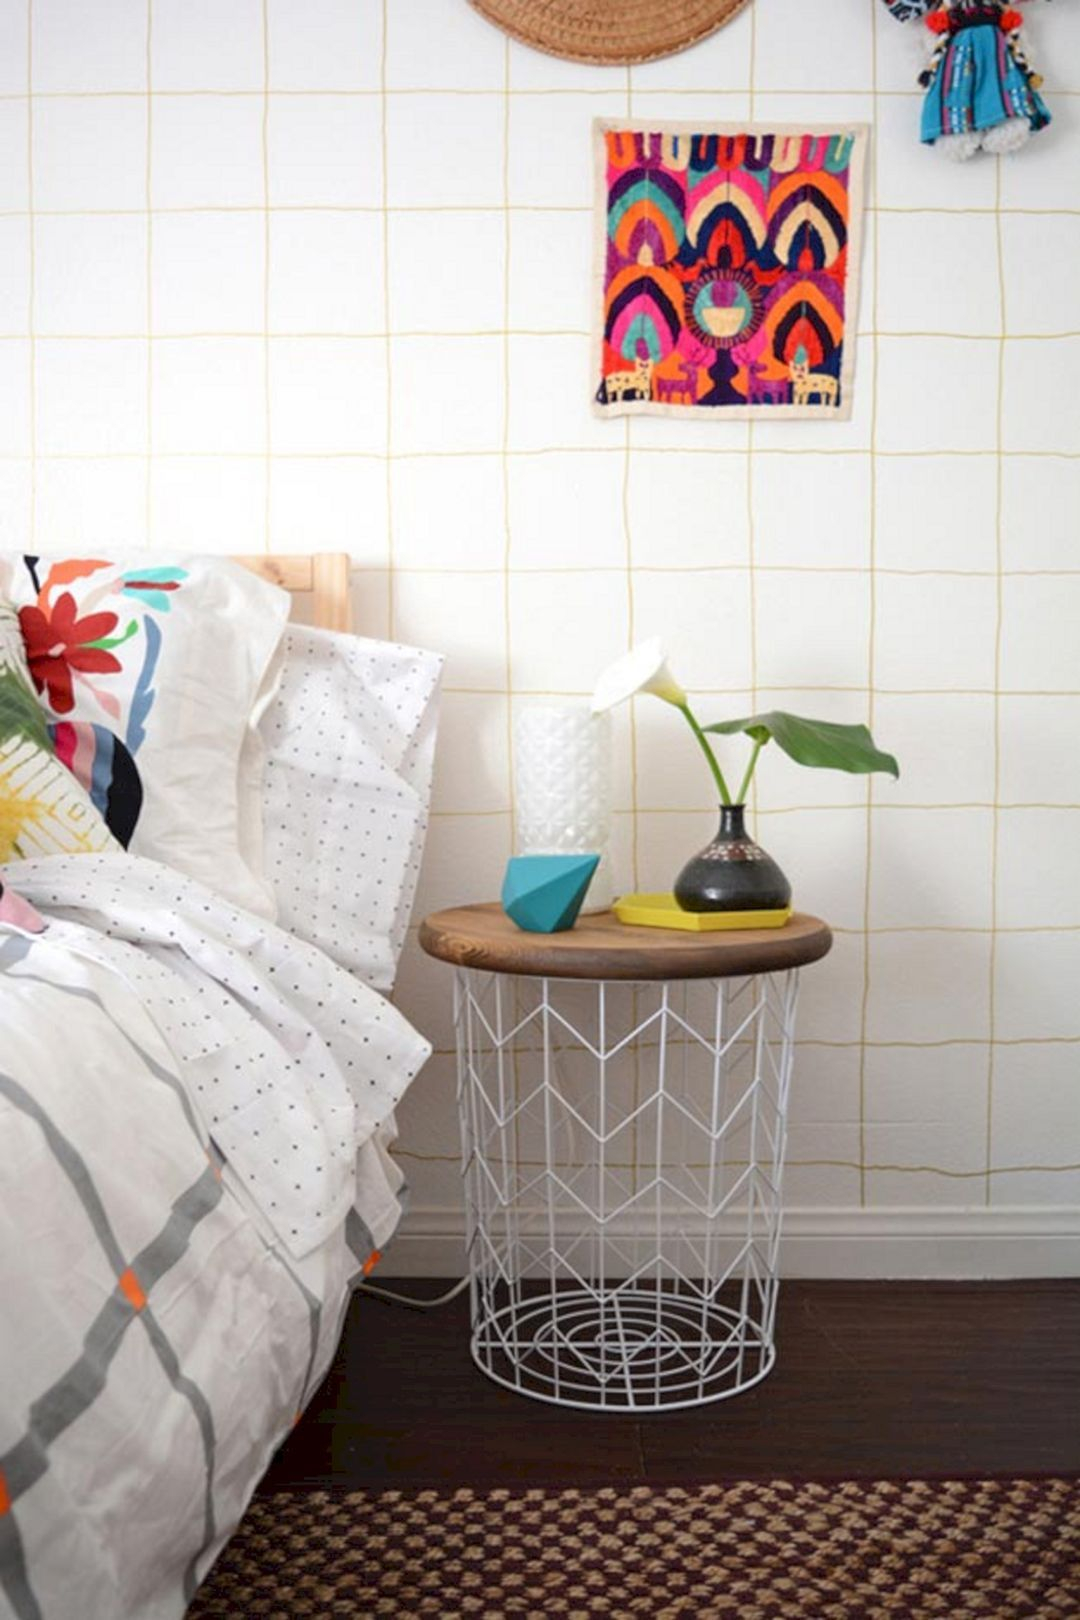 Transform a basket into a nightstand Spectacular DIY Ideas To Create Foremost Dorm Room Décor